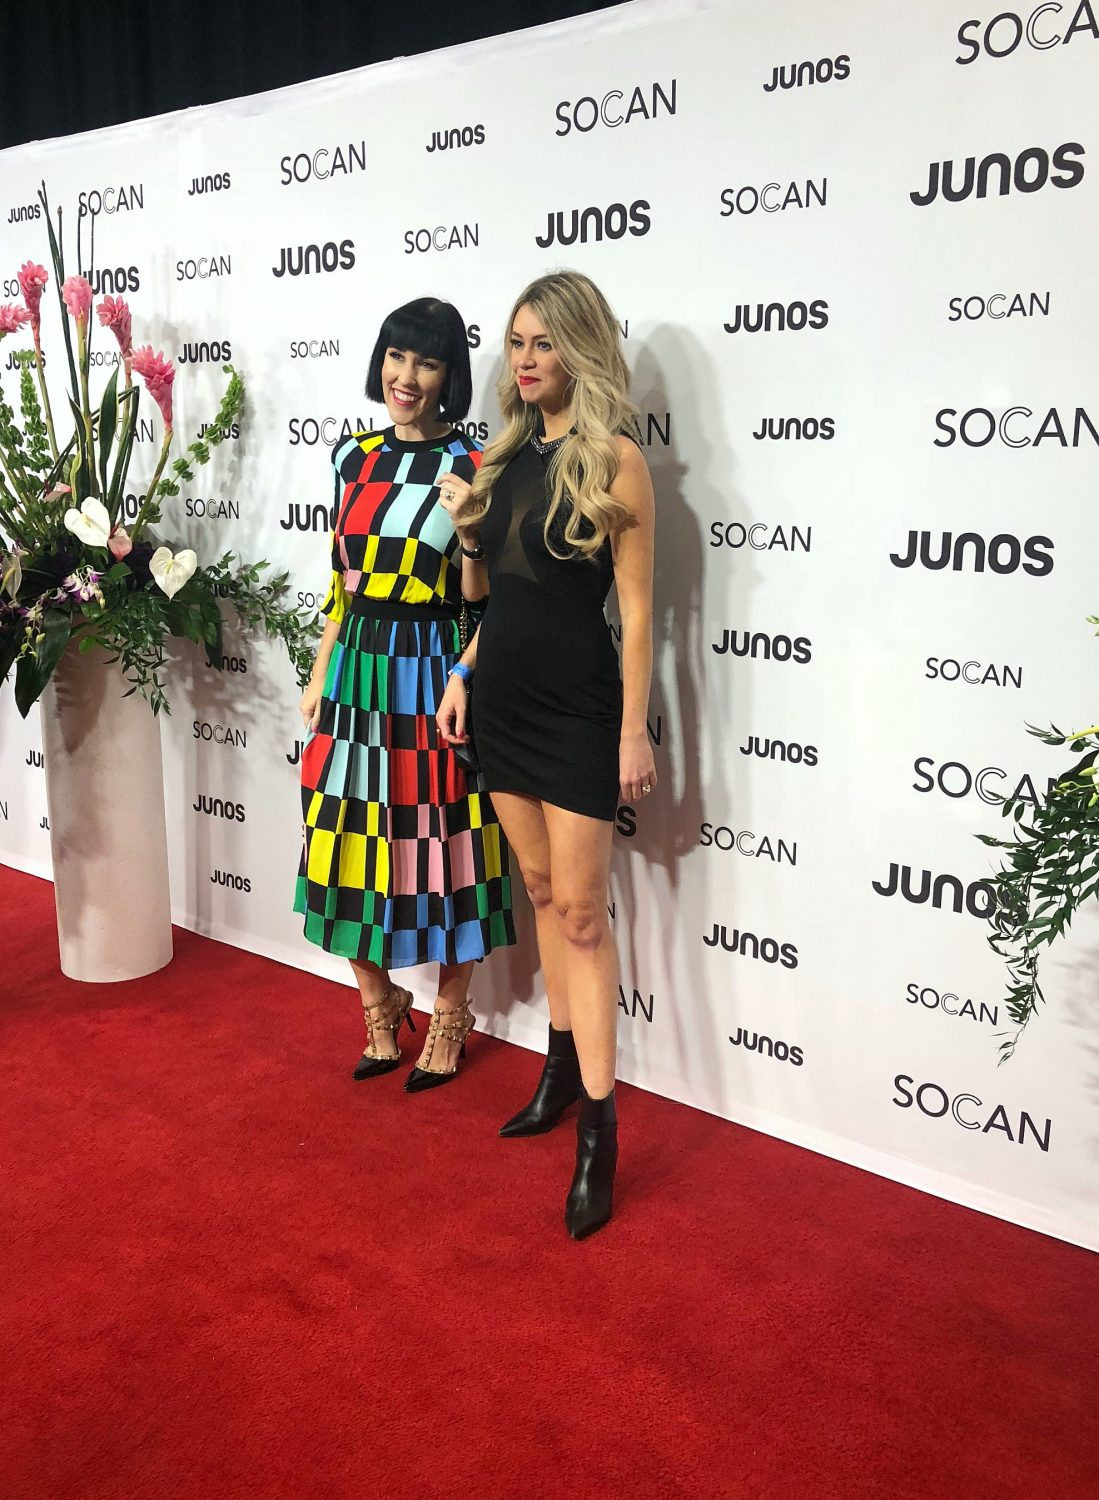 Red Carpet JUNOS 2019 London Ontario - Pursuing Pretty & The Pink Millennial